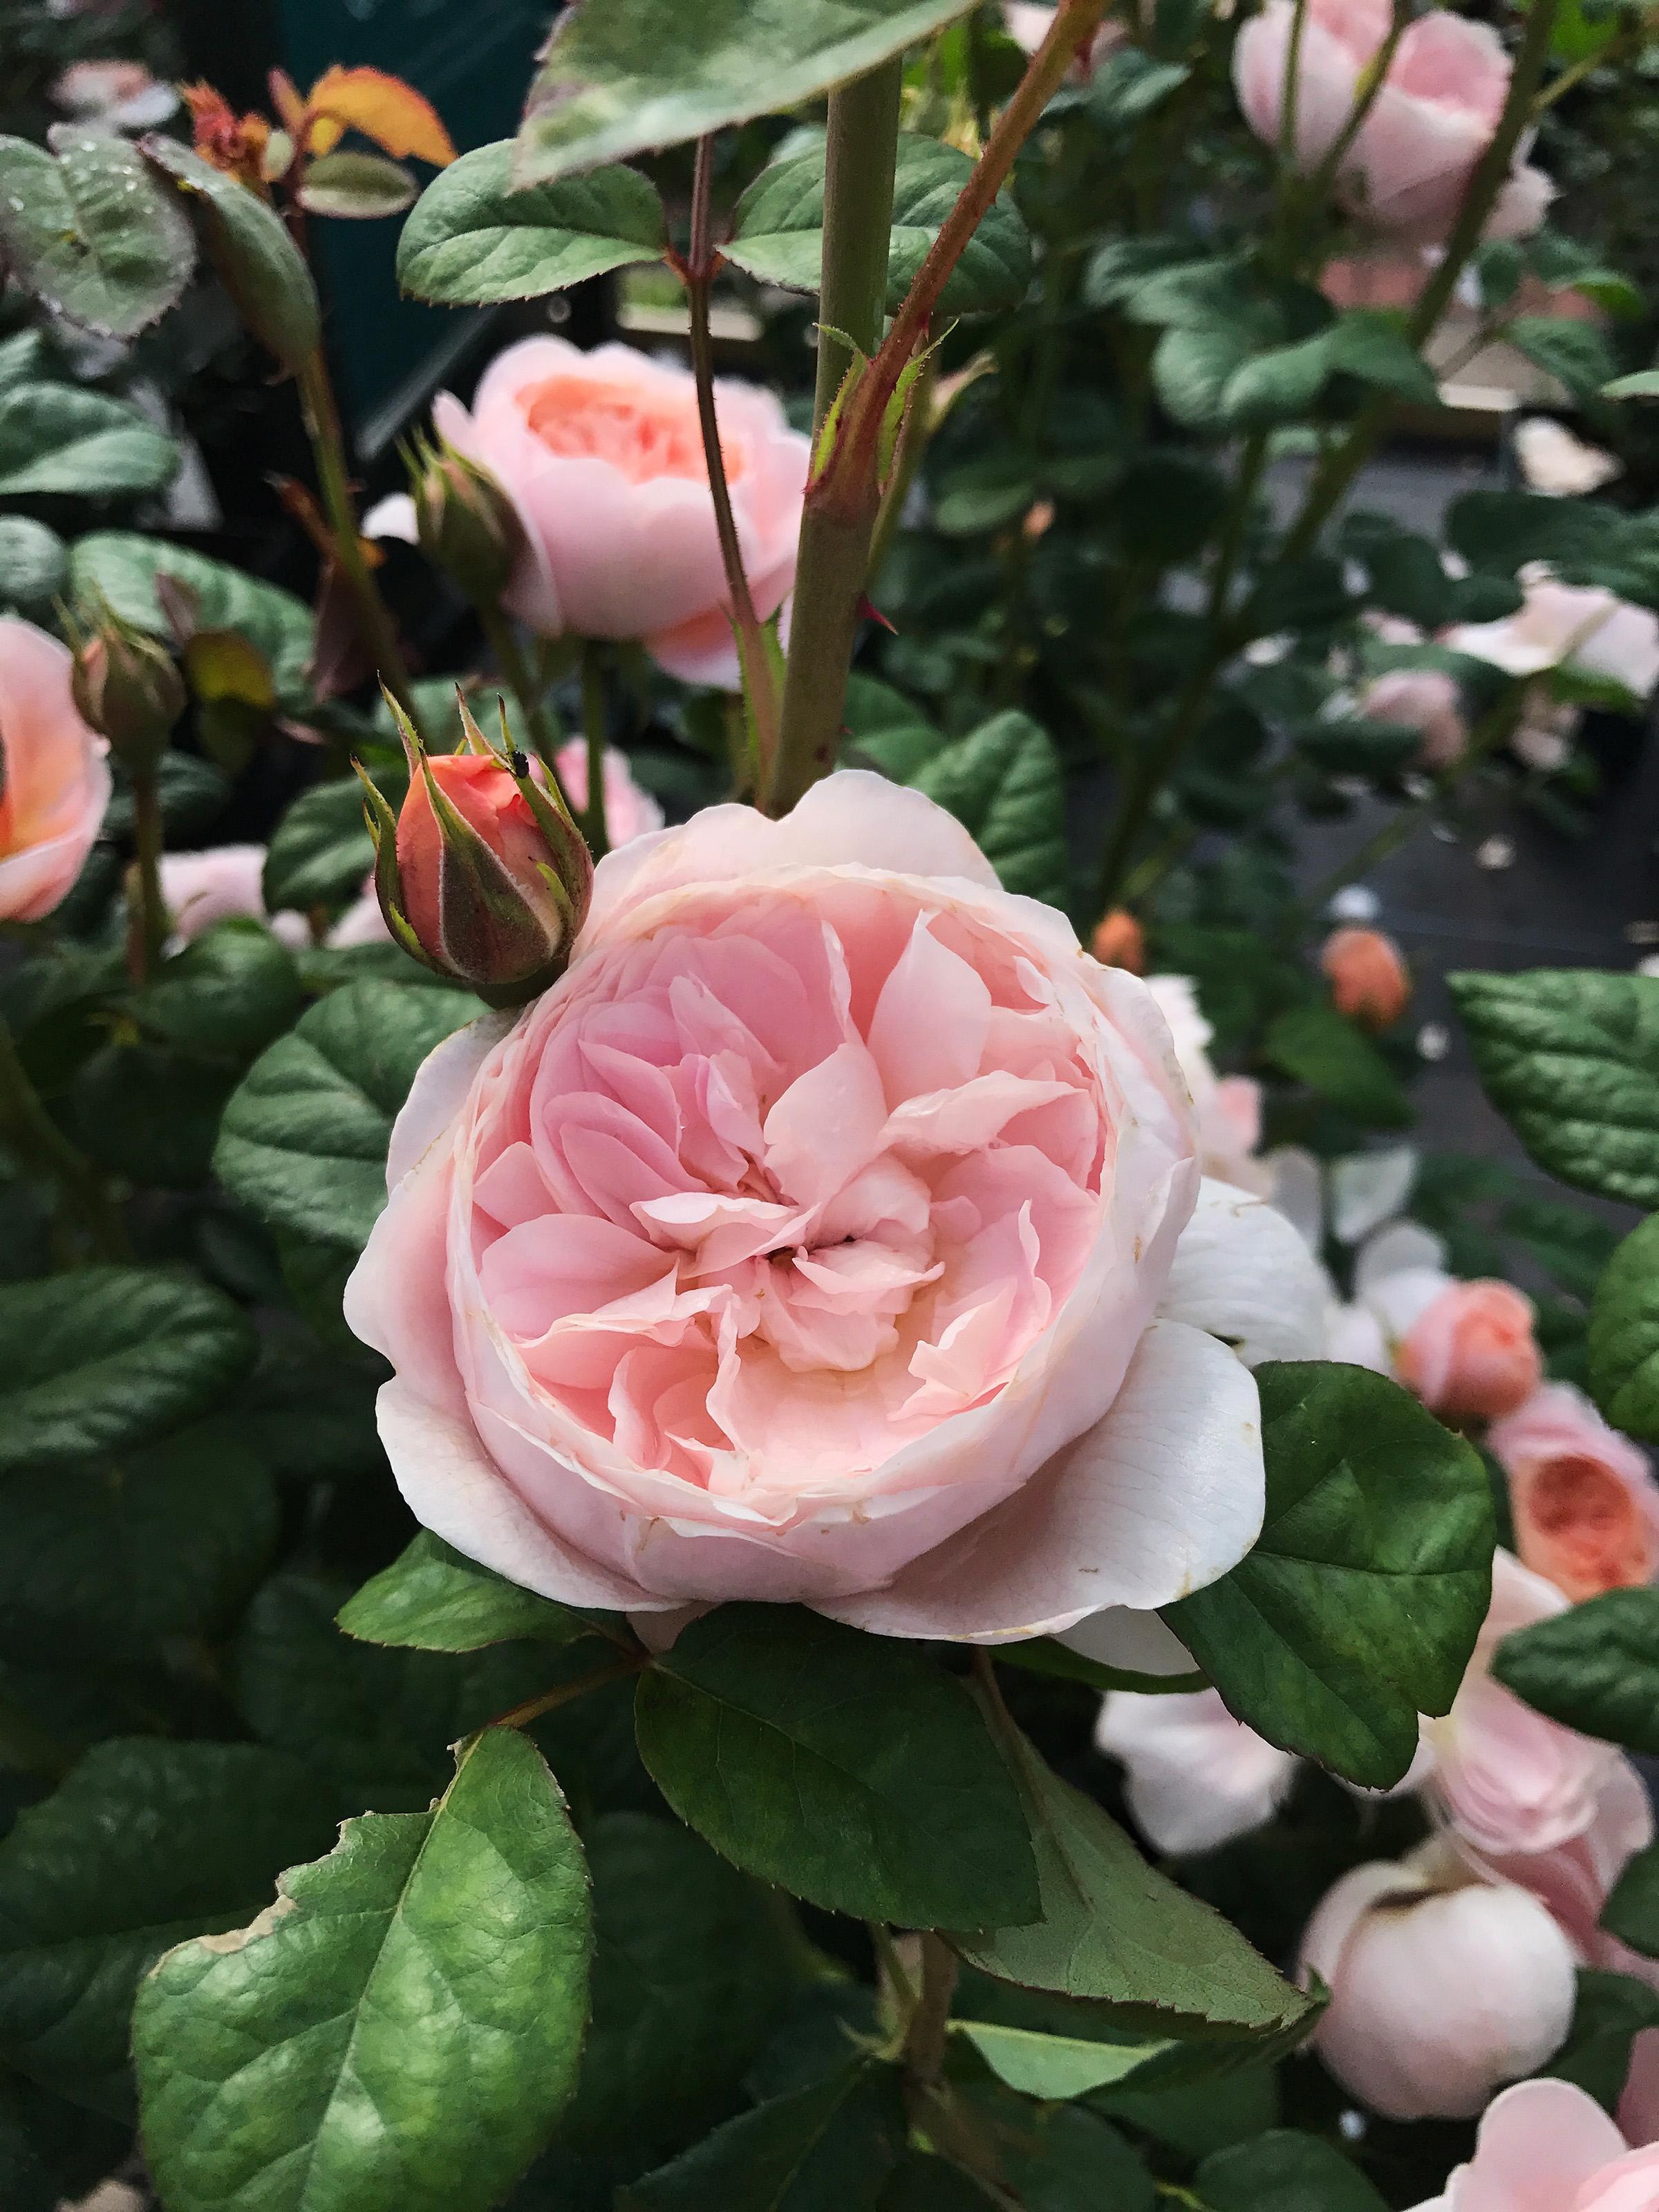 Roses In Garden: In The Garden: Celebrate Roses With Lecture, Show